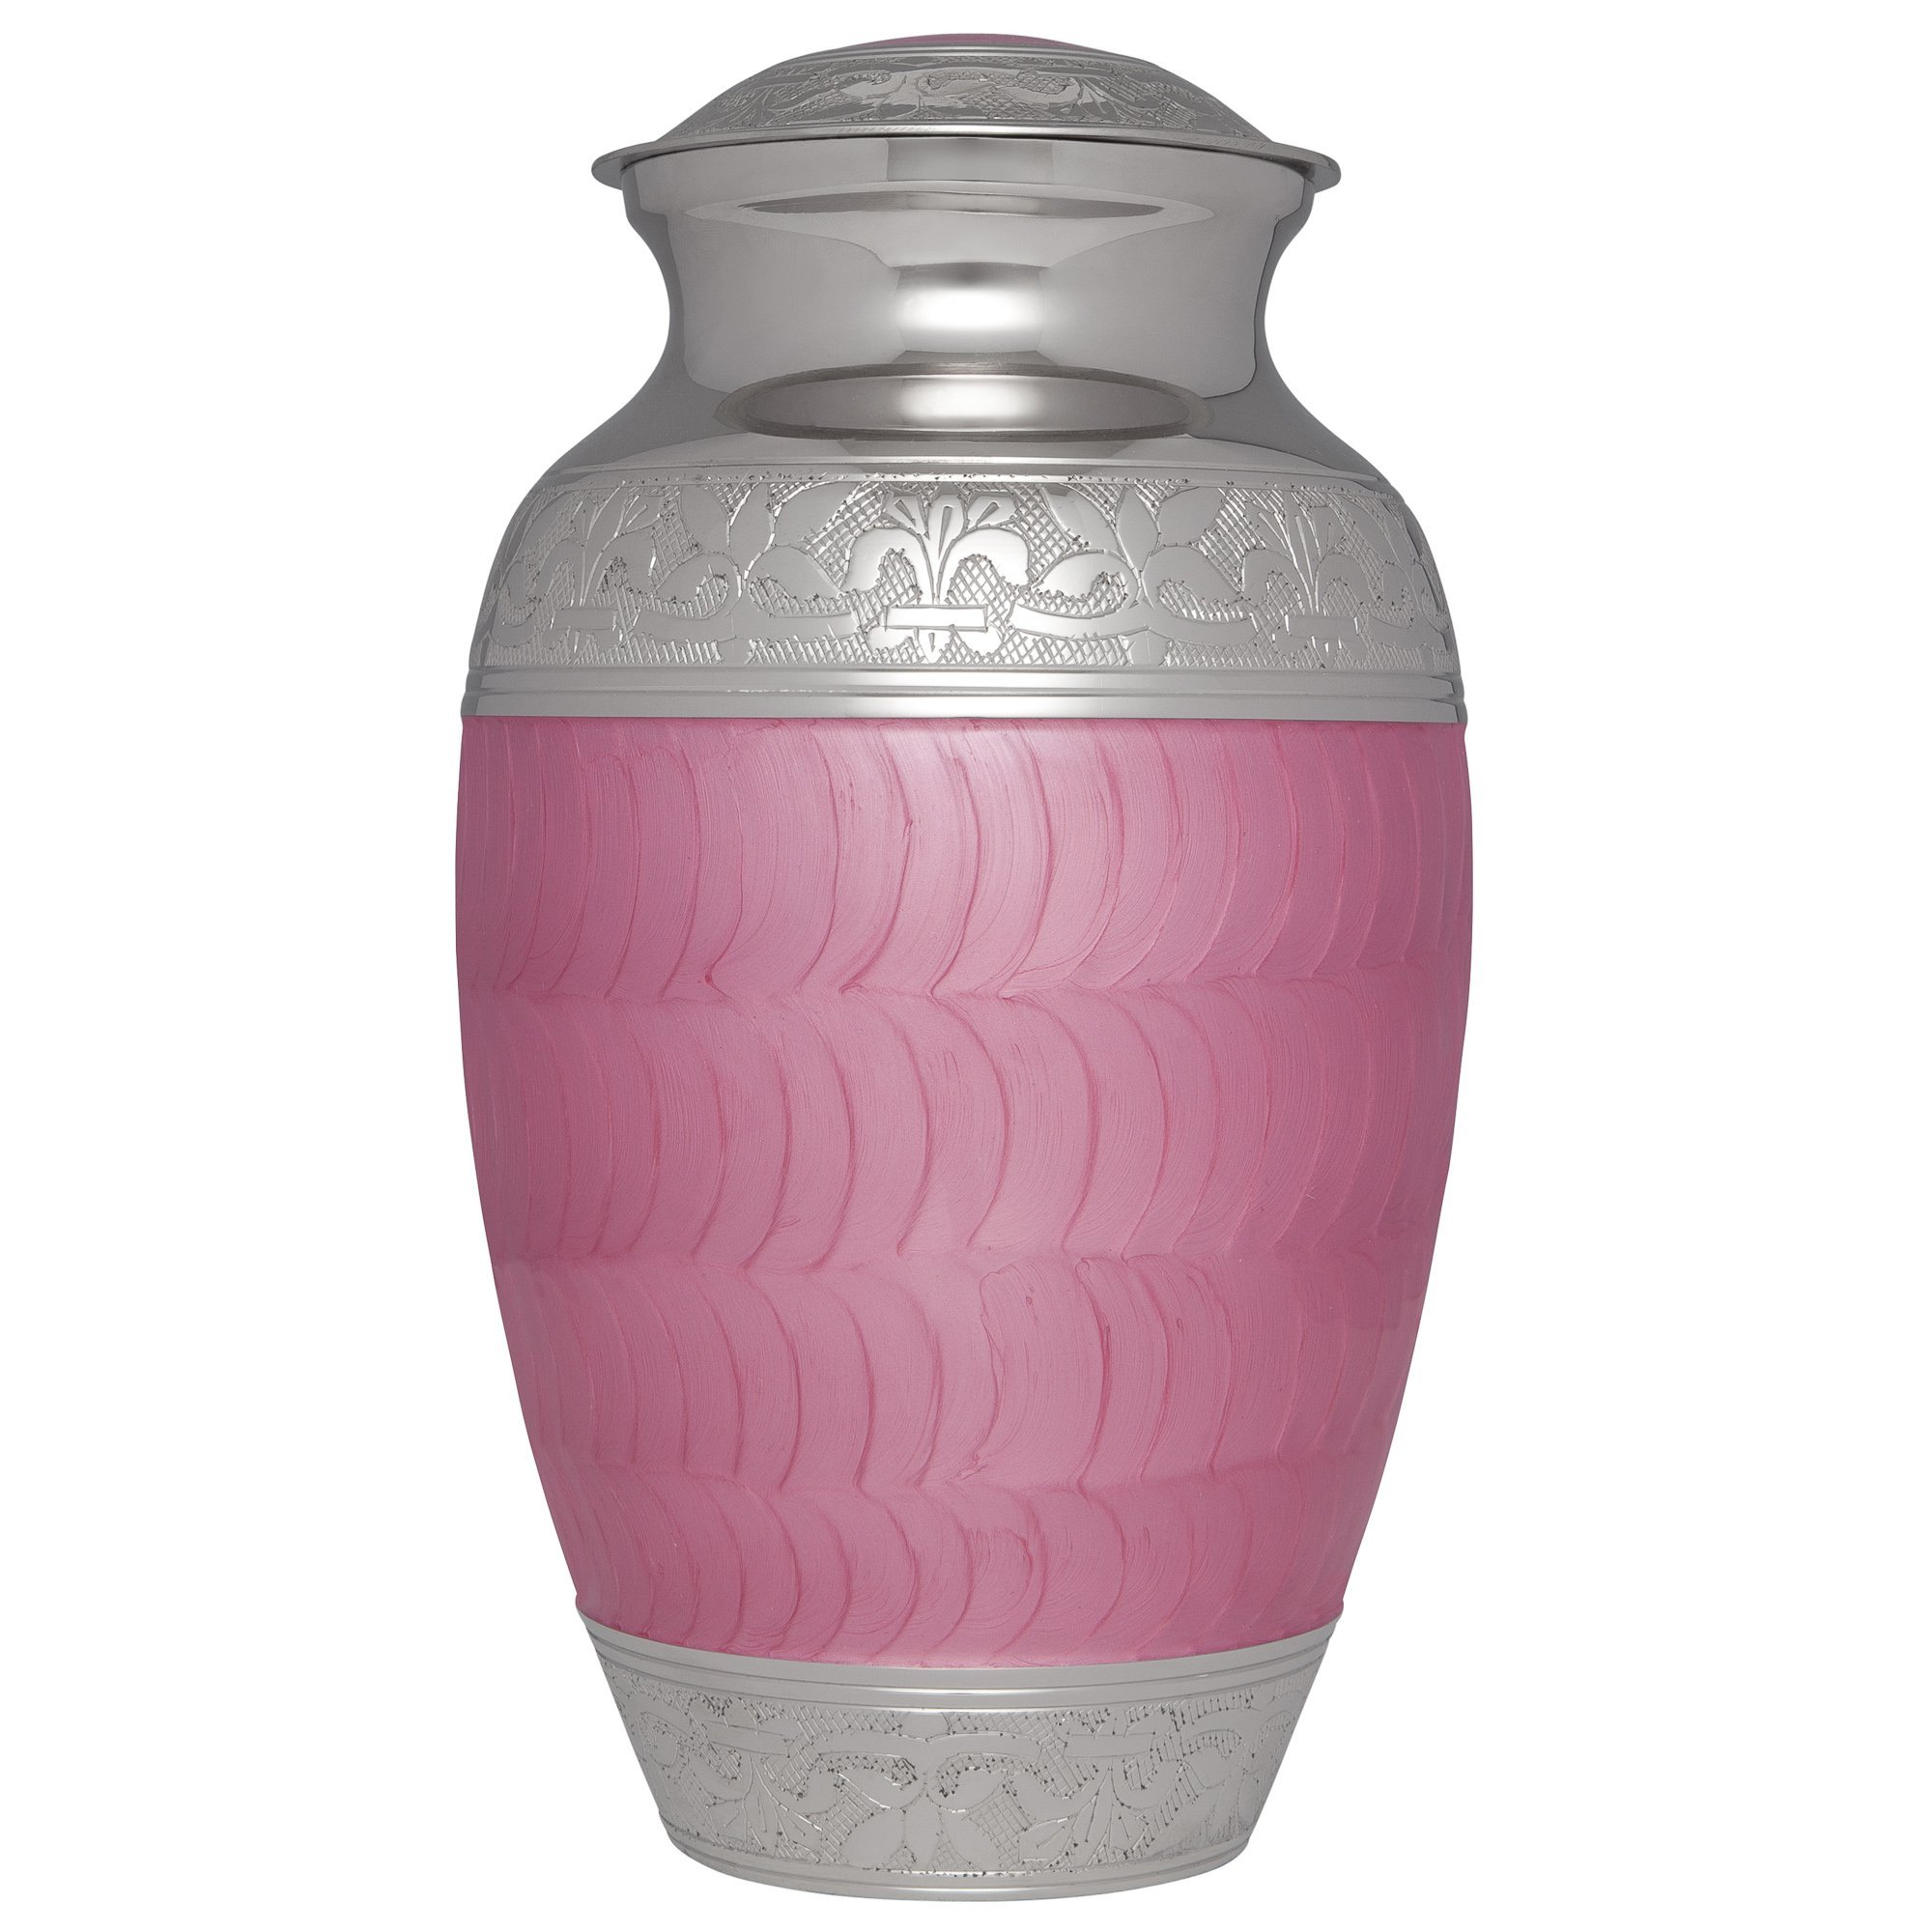 Pink Funeral Urn by Liliane Memorials - Cremation Urn for Human Ashes - Hand Made in Brass - Suitable for Cemetery Burial or Niche - Large Size fits remains of Adults up to 200 lbs - Olas Pink Model